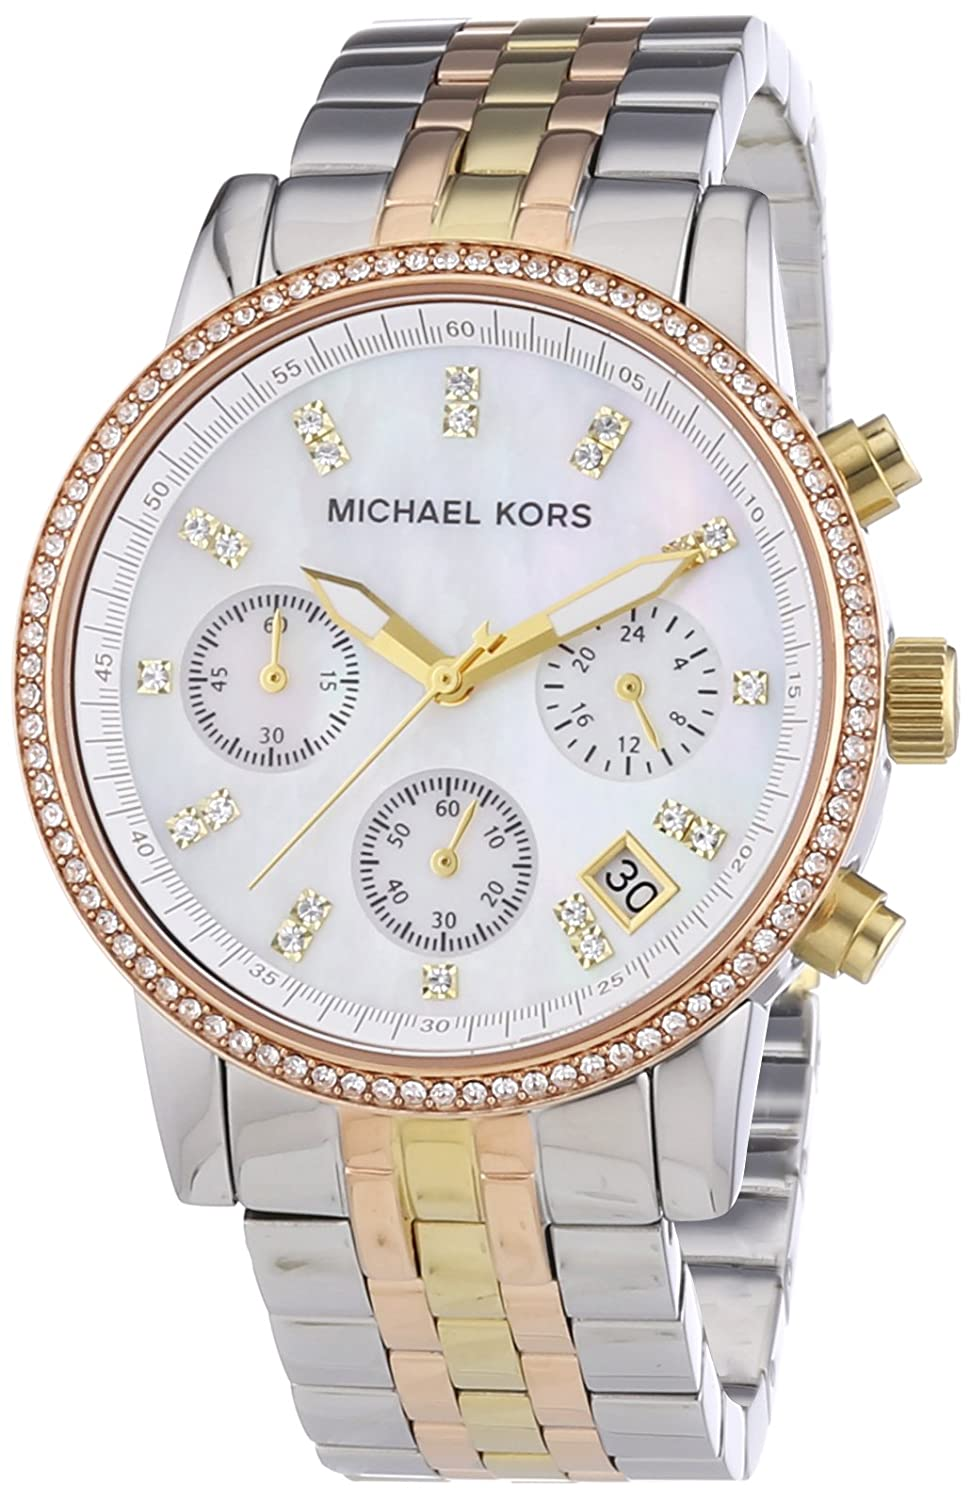 духи, michael kors watch prices in canada боятся